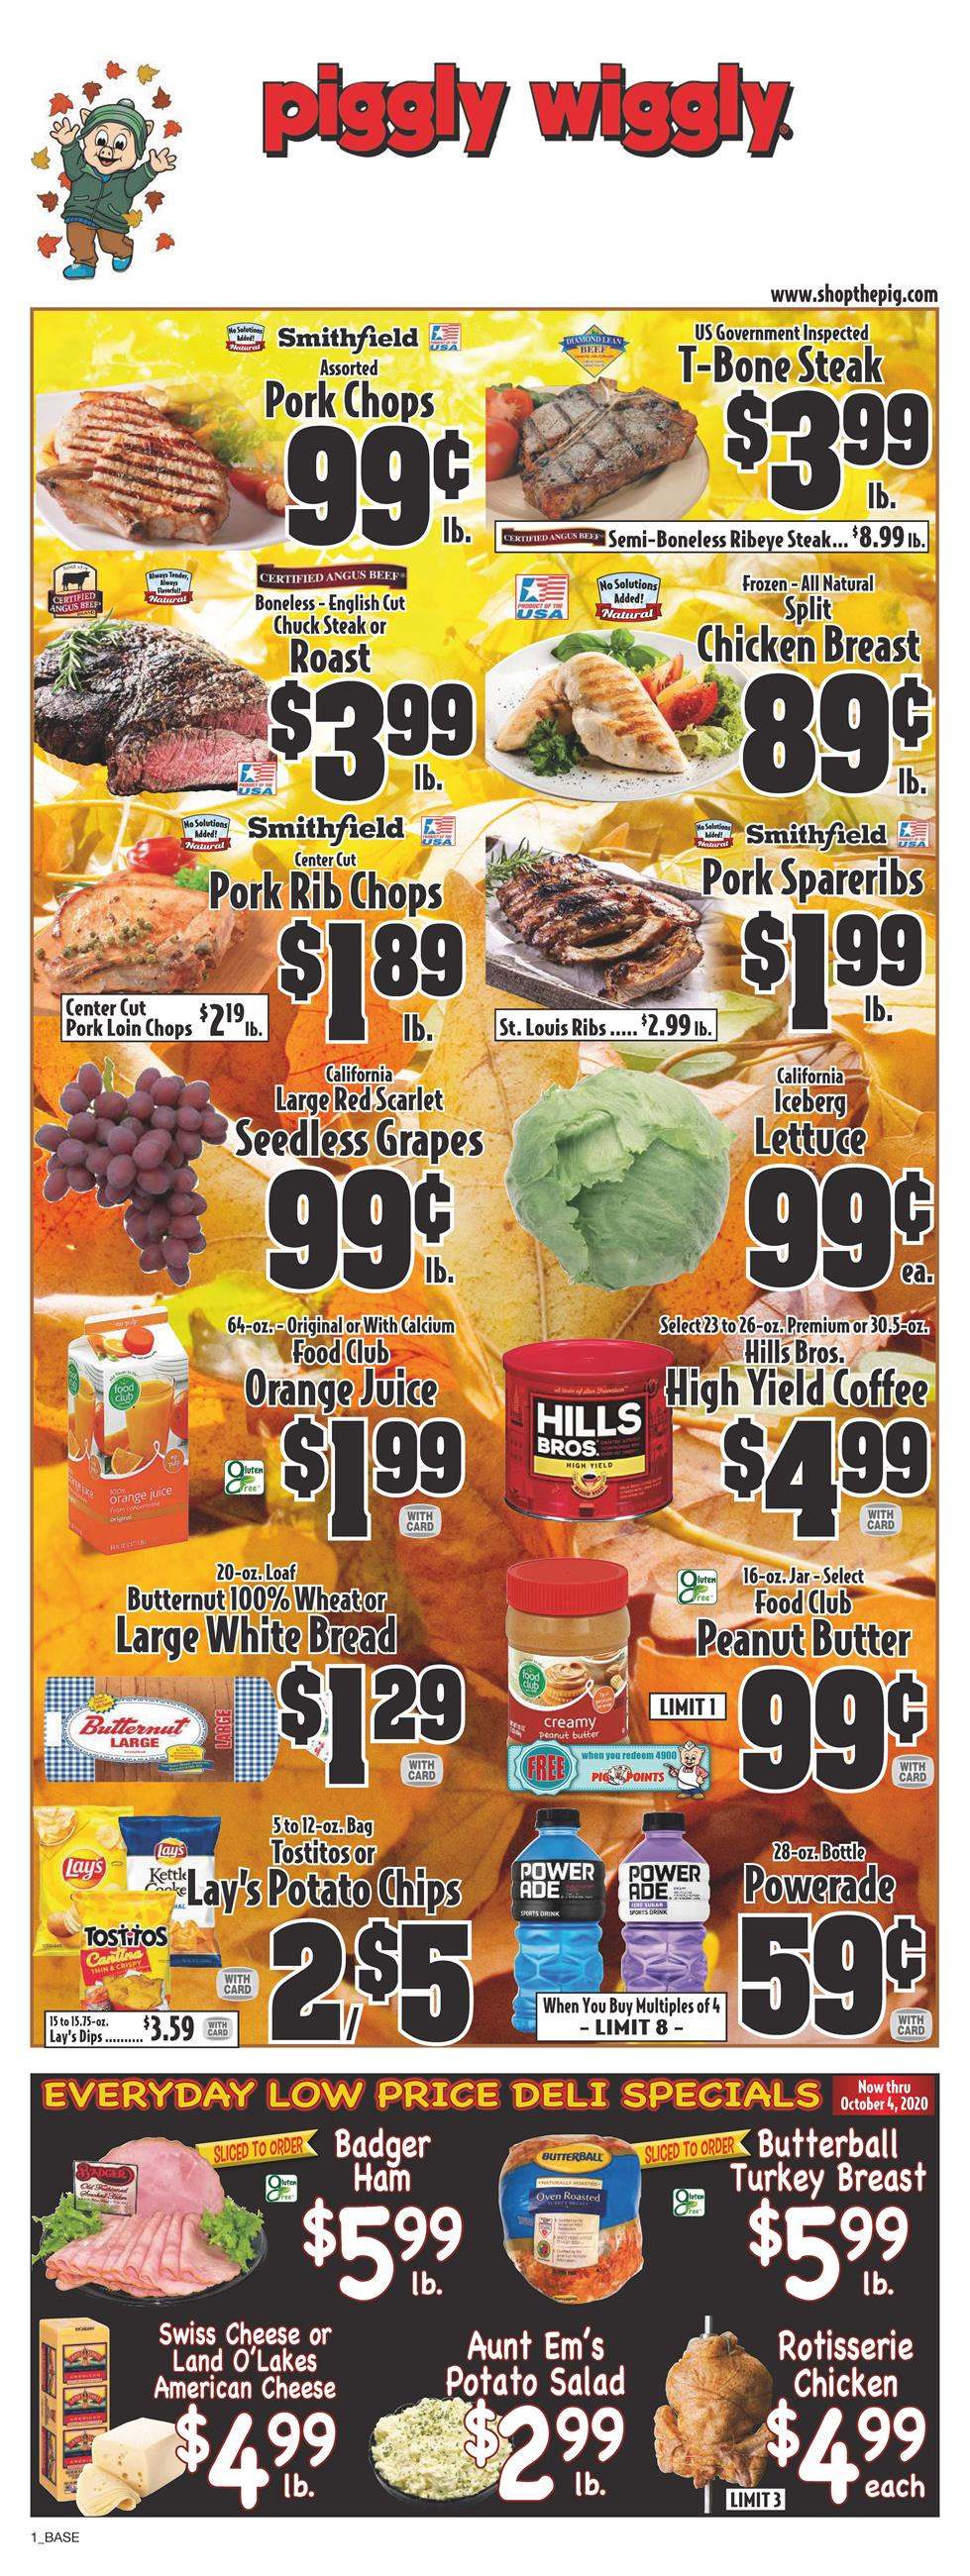 Piggly Wiggly September Weekly Ad valid from Sep 16 – 22, 2020